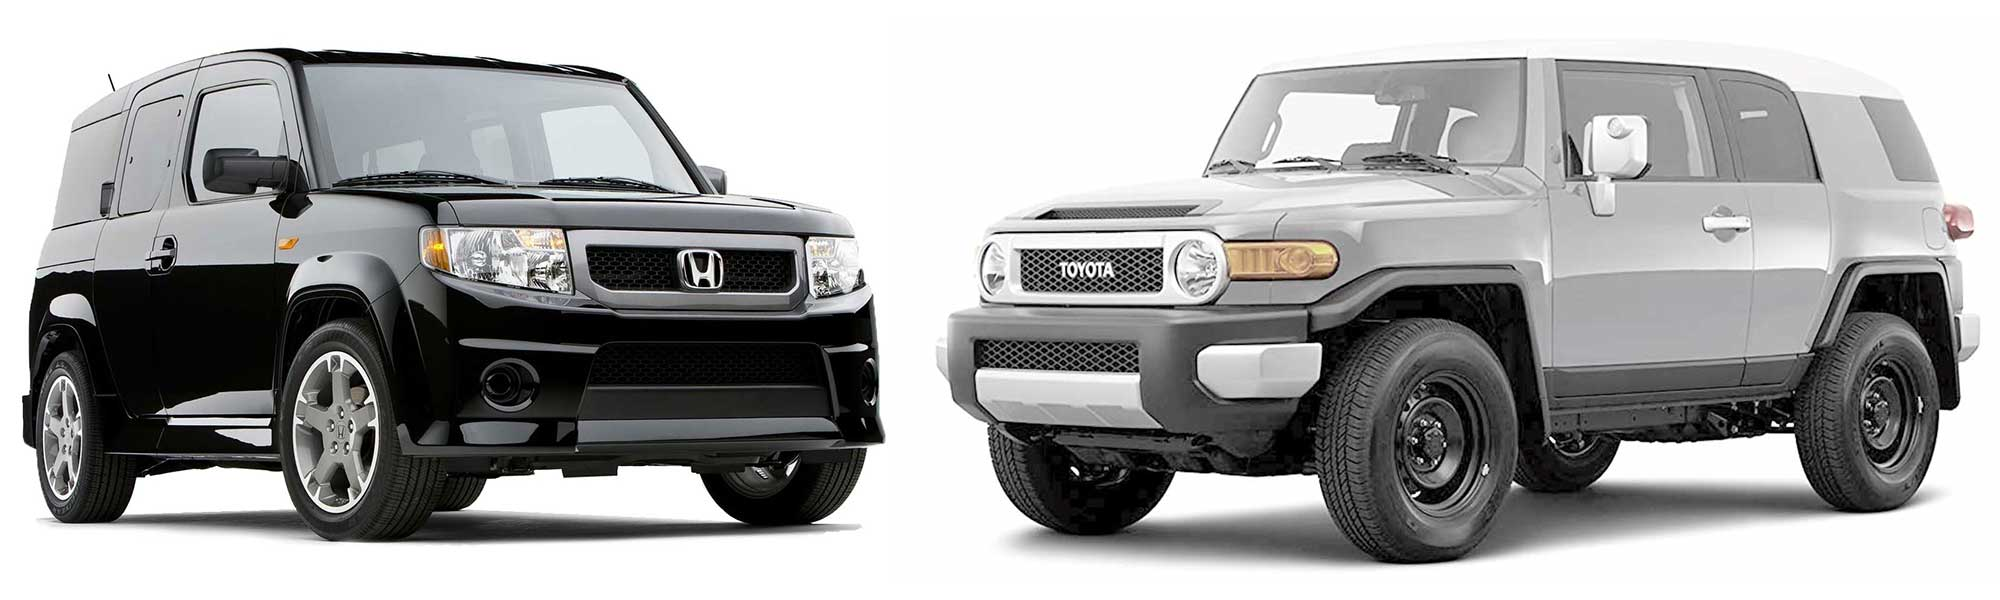 Honda Element vs Toyota FJ Cruiser.